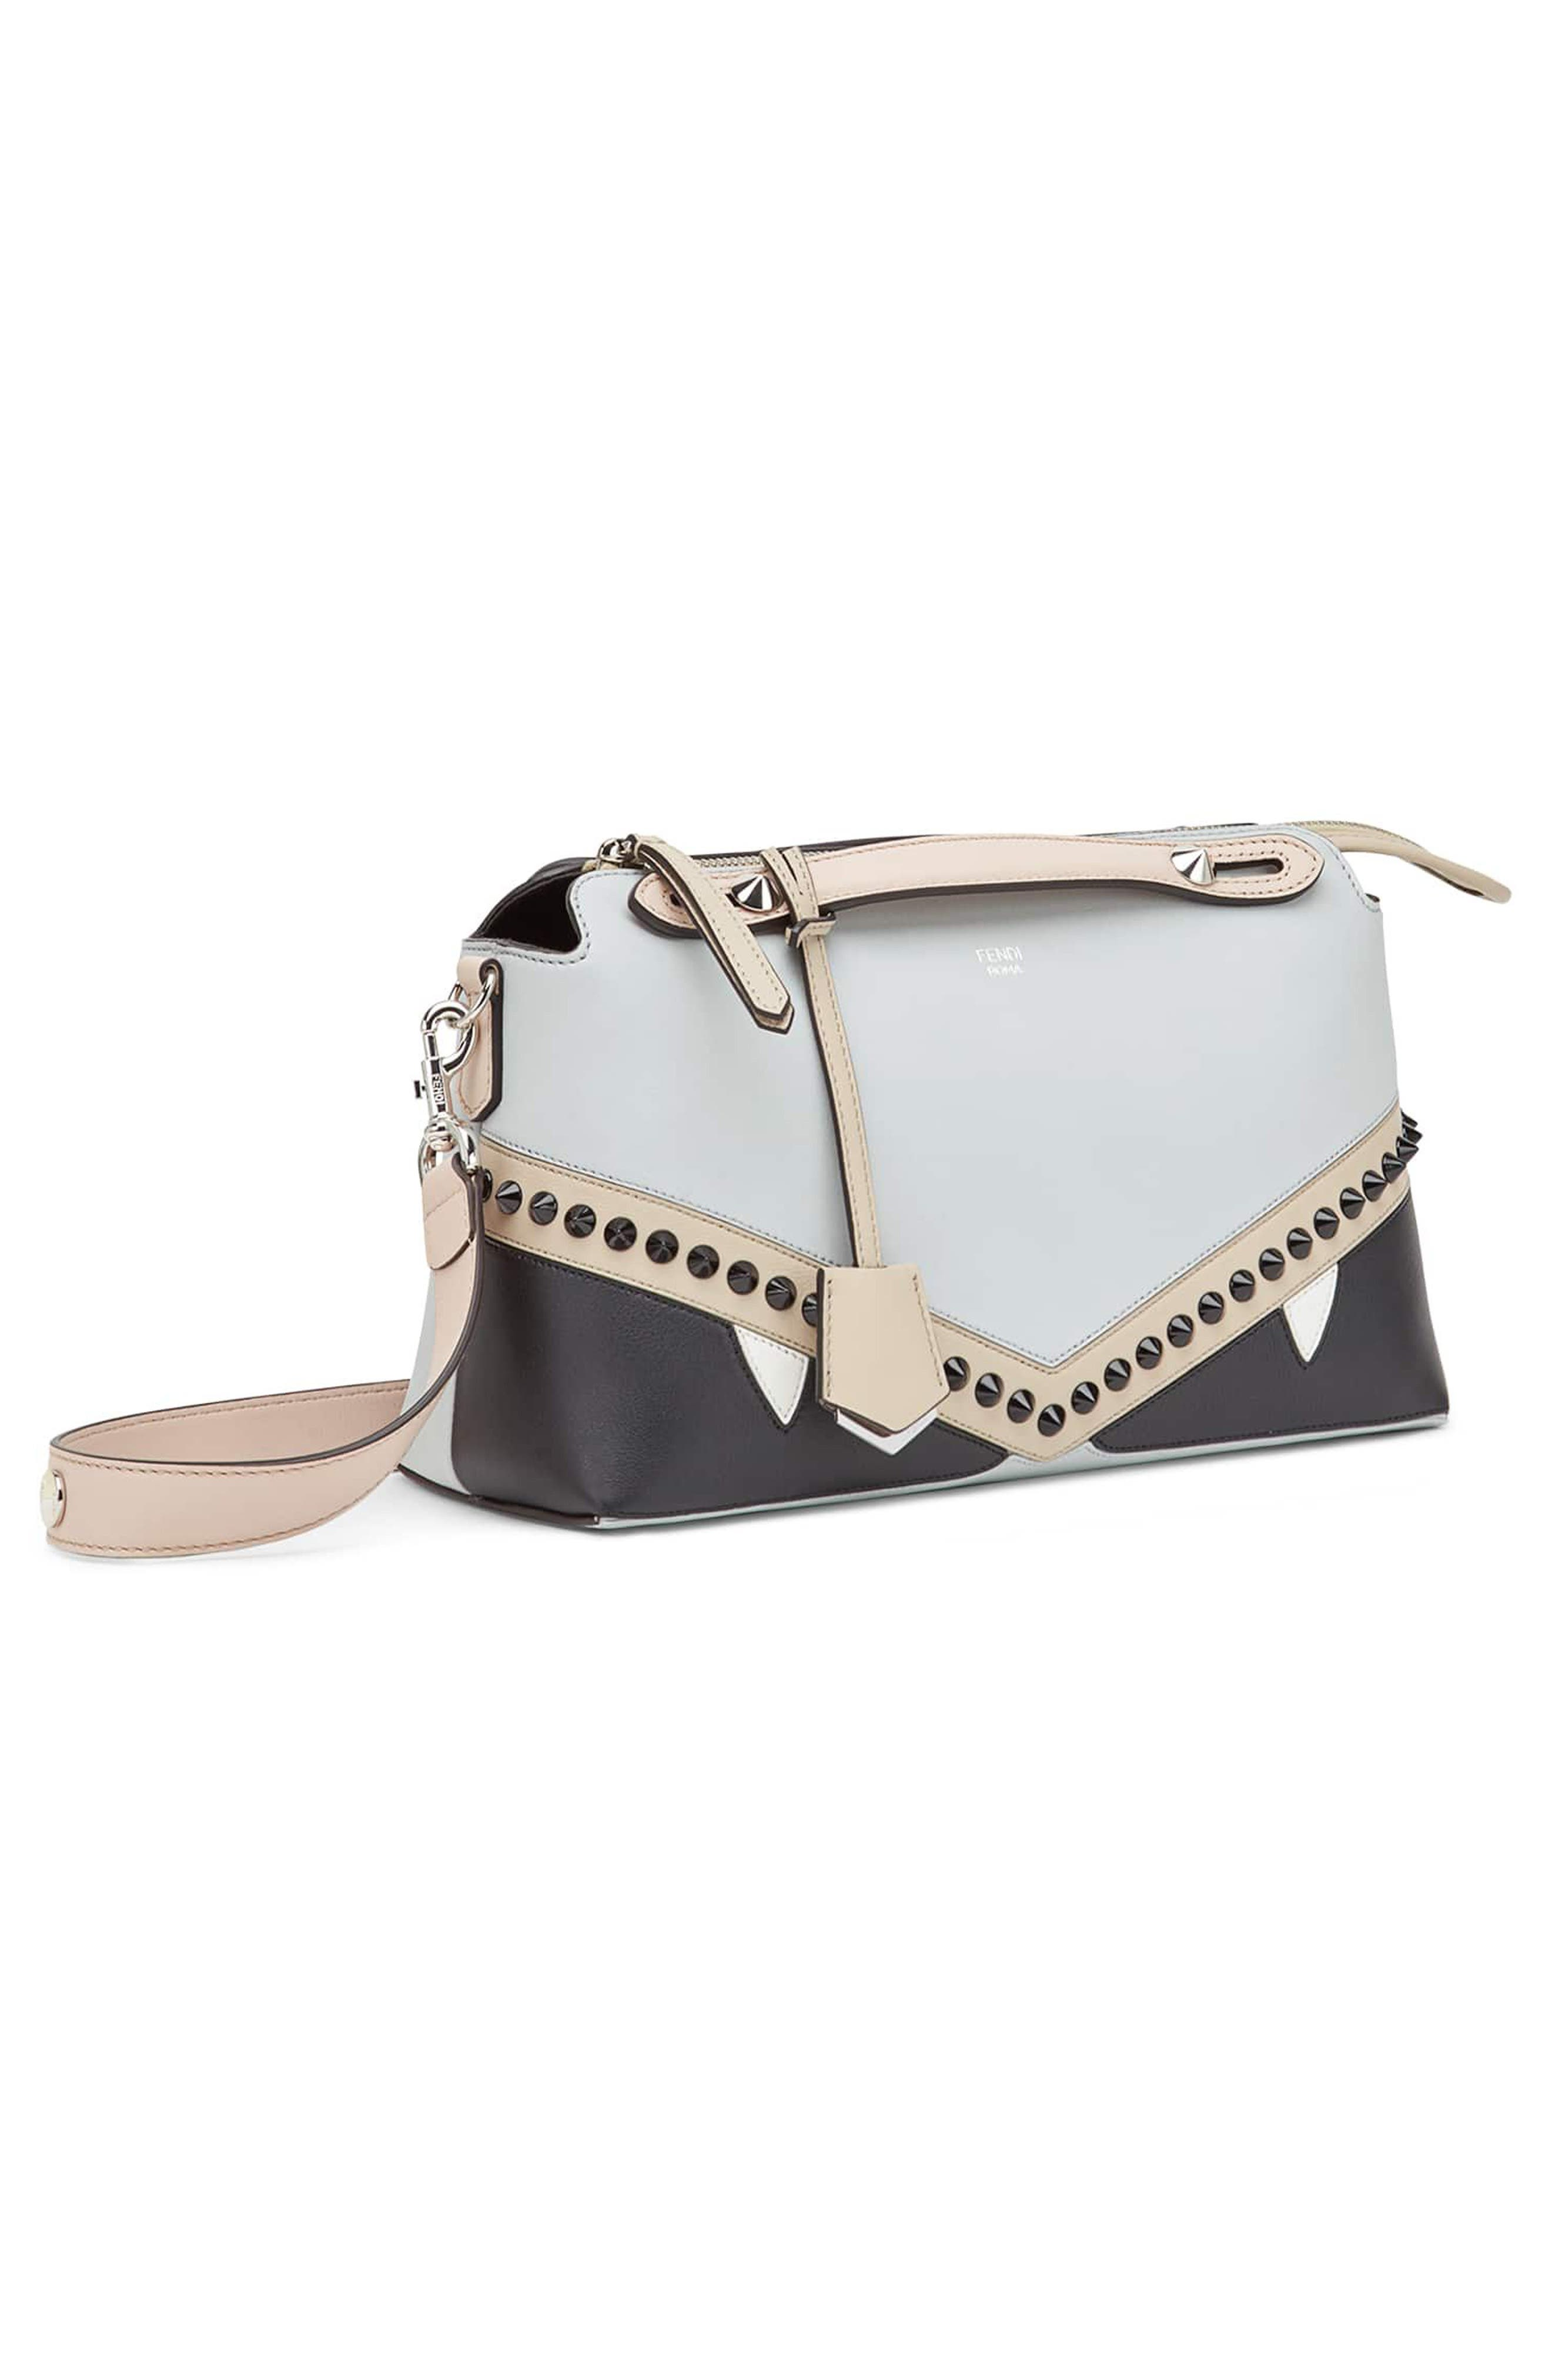 By the Way - Monster Eyes Leather Shoulder Bag,                             Alternate thumbnail 4, color,                             Grigio Perla/ Nuvola Multi